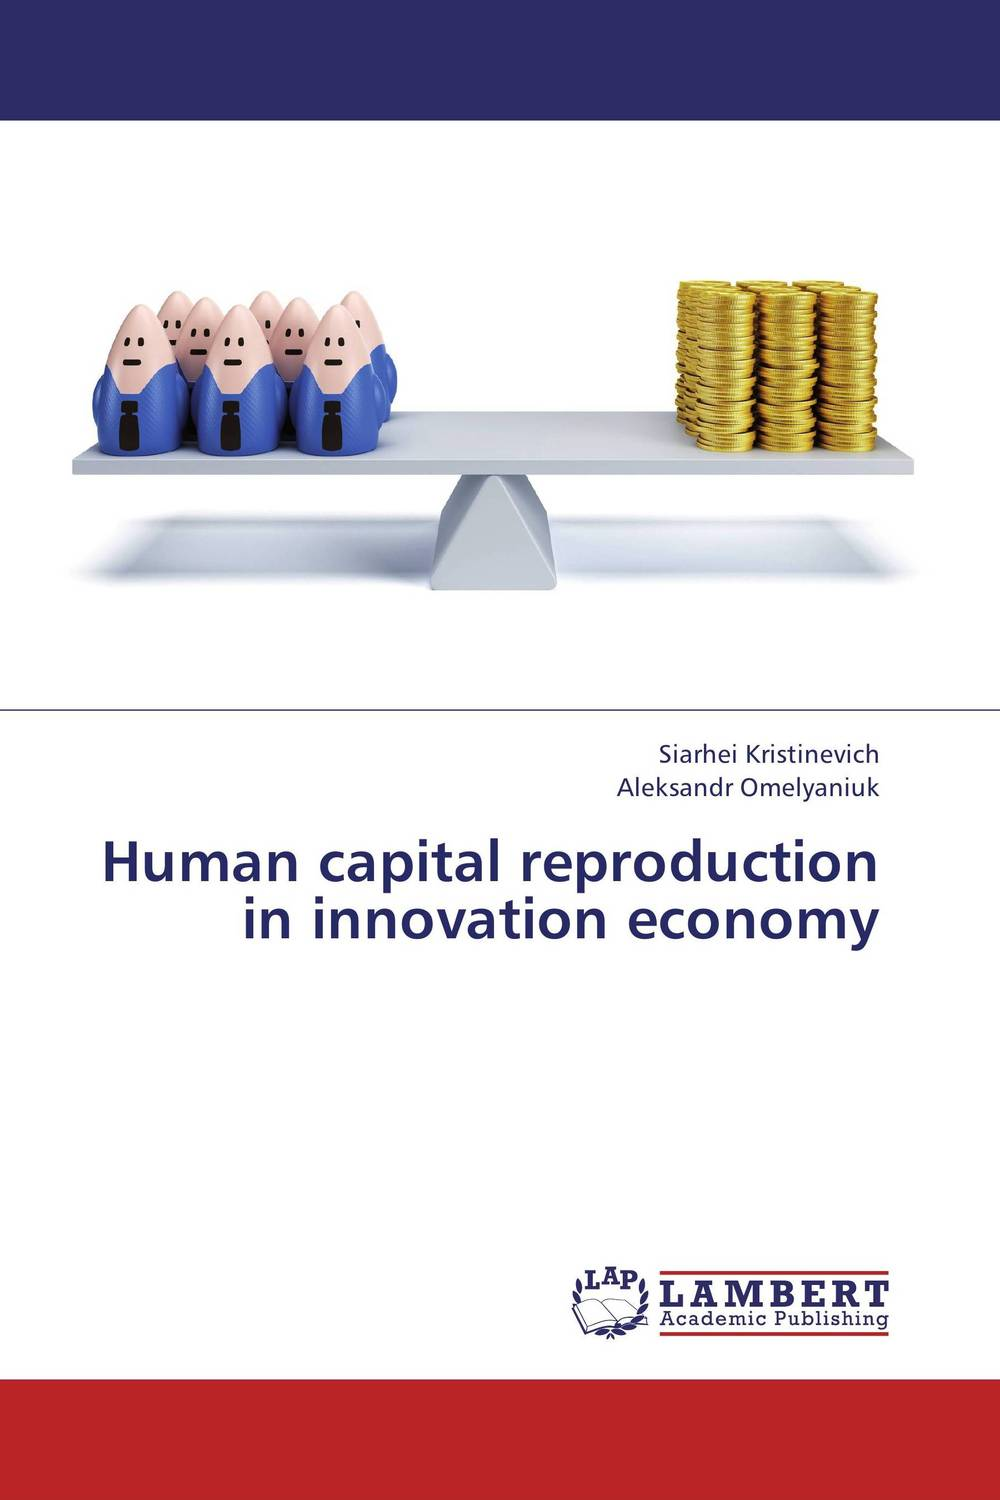 Human capital reproduction in innovation economy